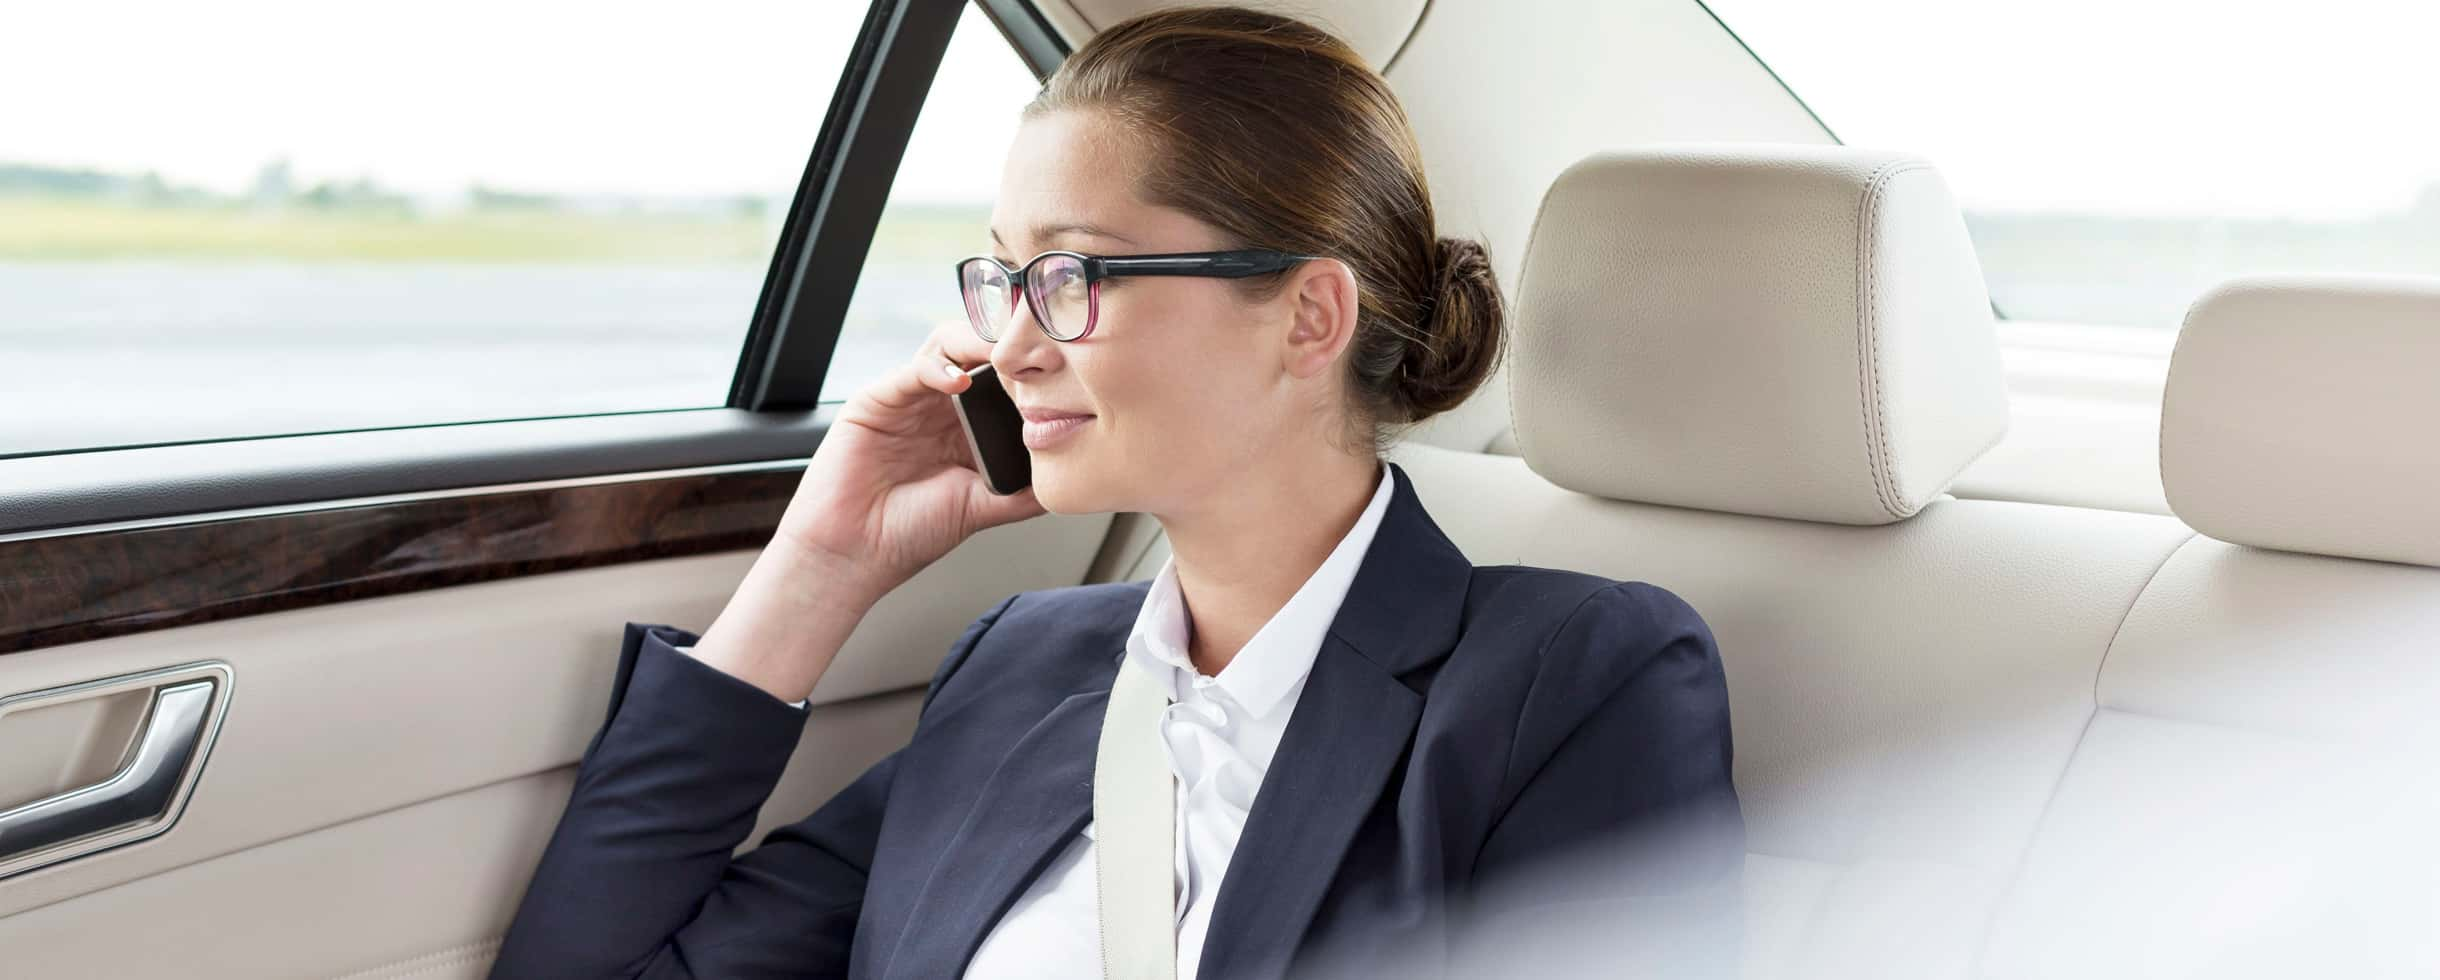 Business woman riding in the back seat of a car talking on her phone